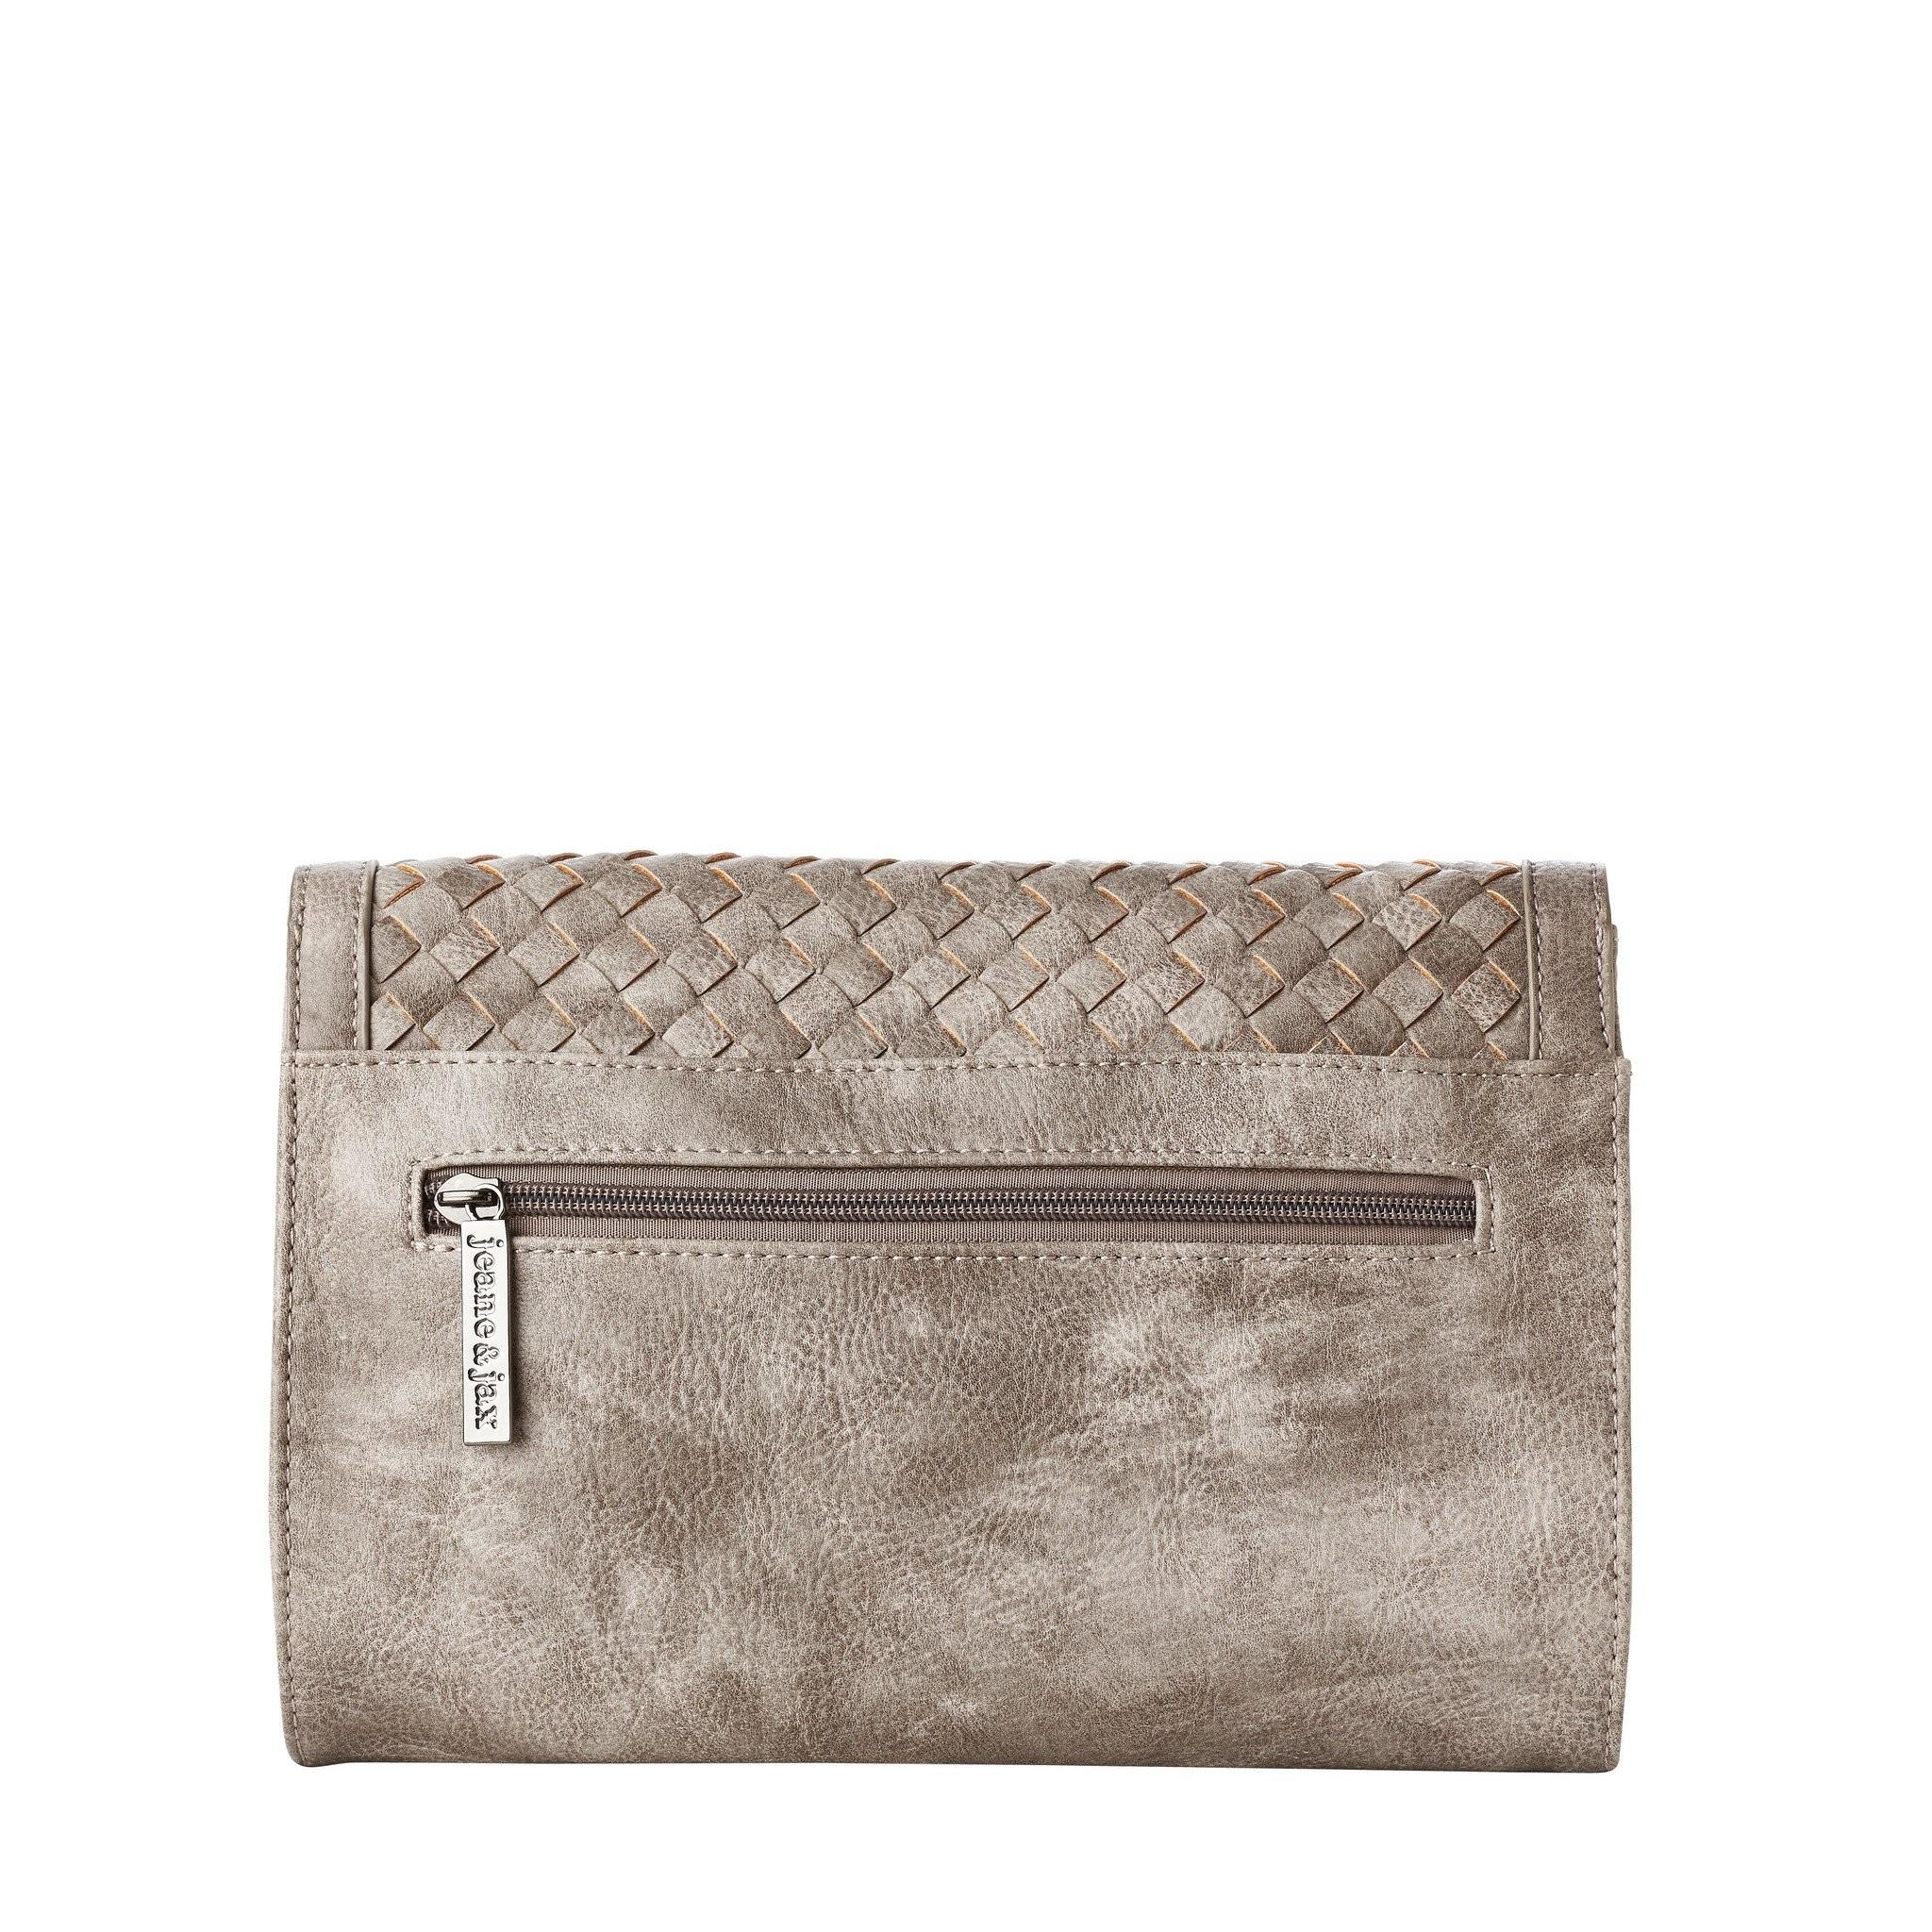 Vegan Leather Woven Flap Clutch Jeane Jax